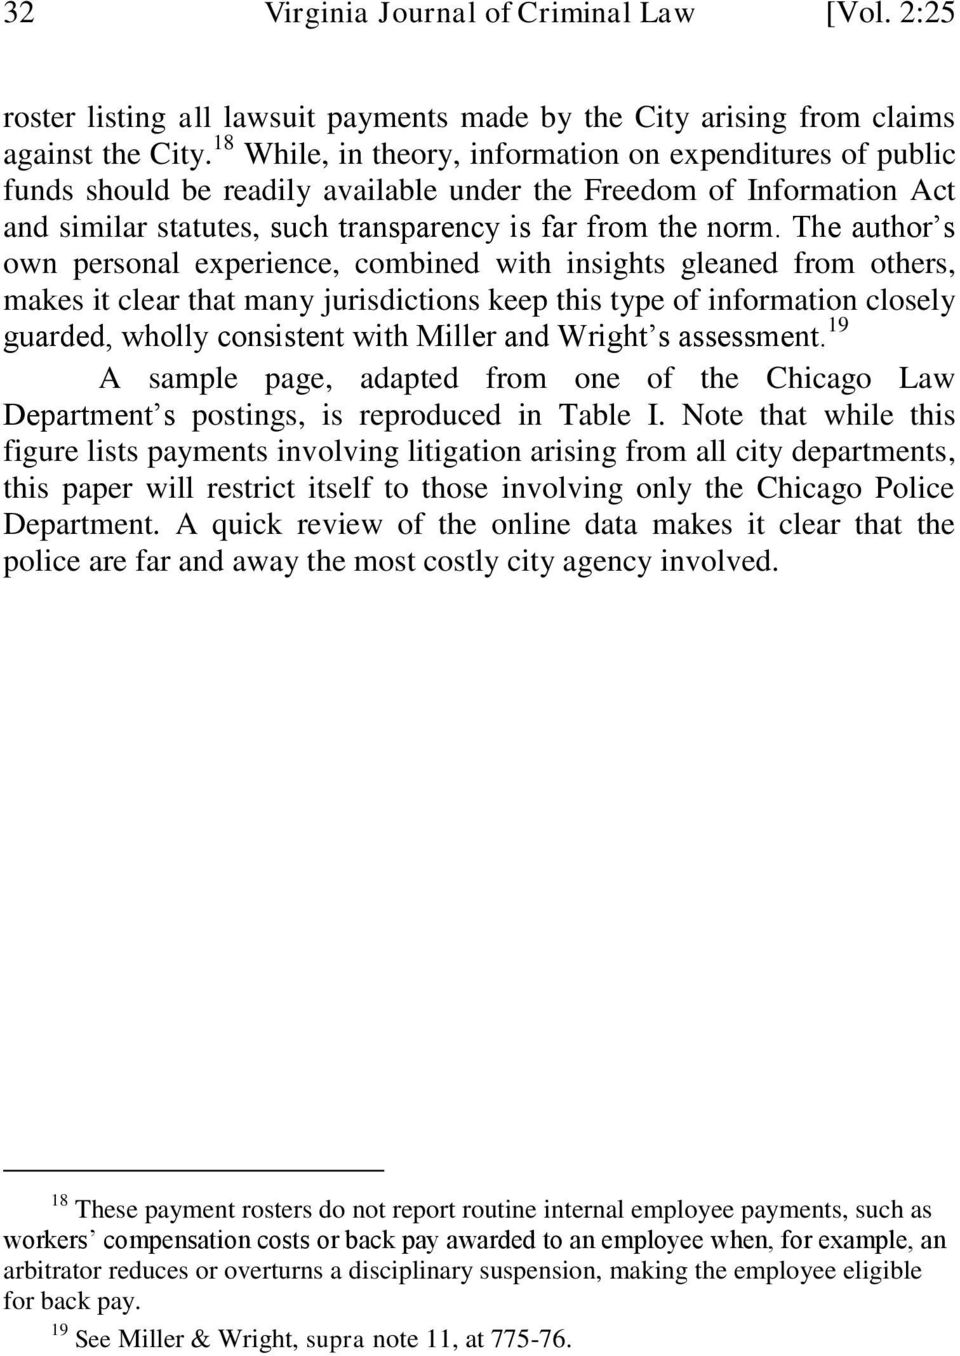 The author s own personal experience, combined with insights gleaned from others, makes it clear that many jurisdictions keep this type of information closely guarded, wholly consistent with Miller